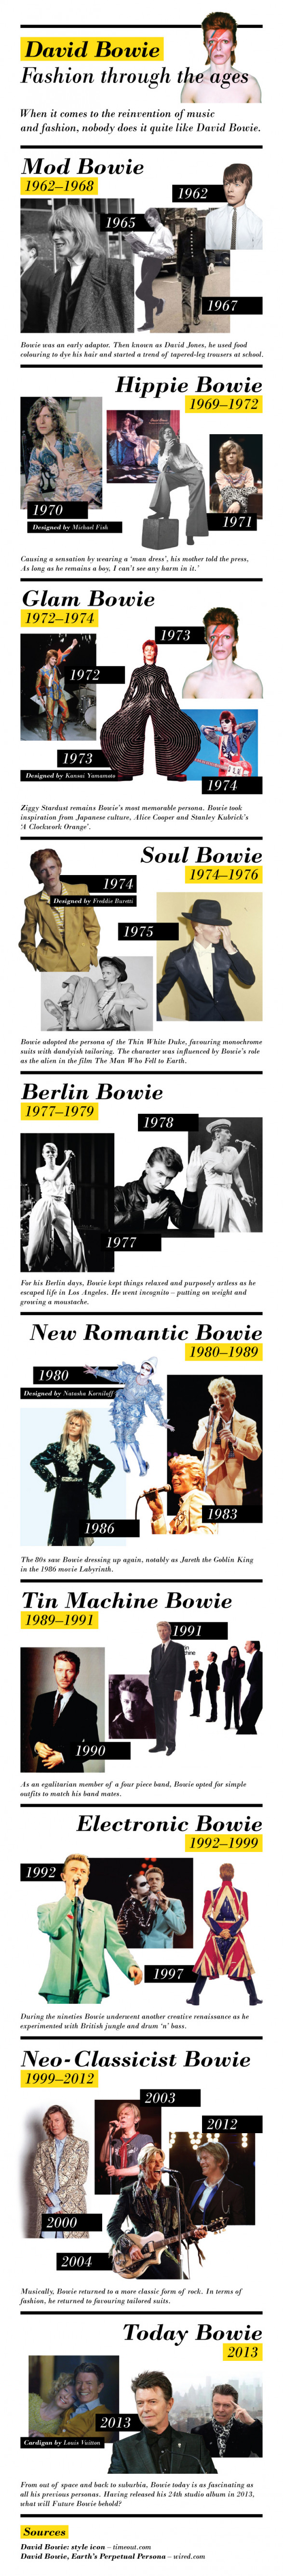 David Bowie Fashion Through the Ages